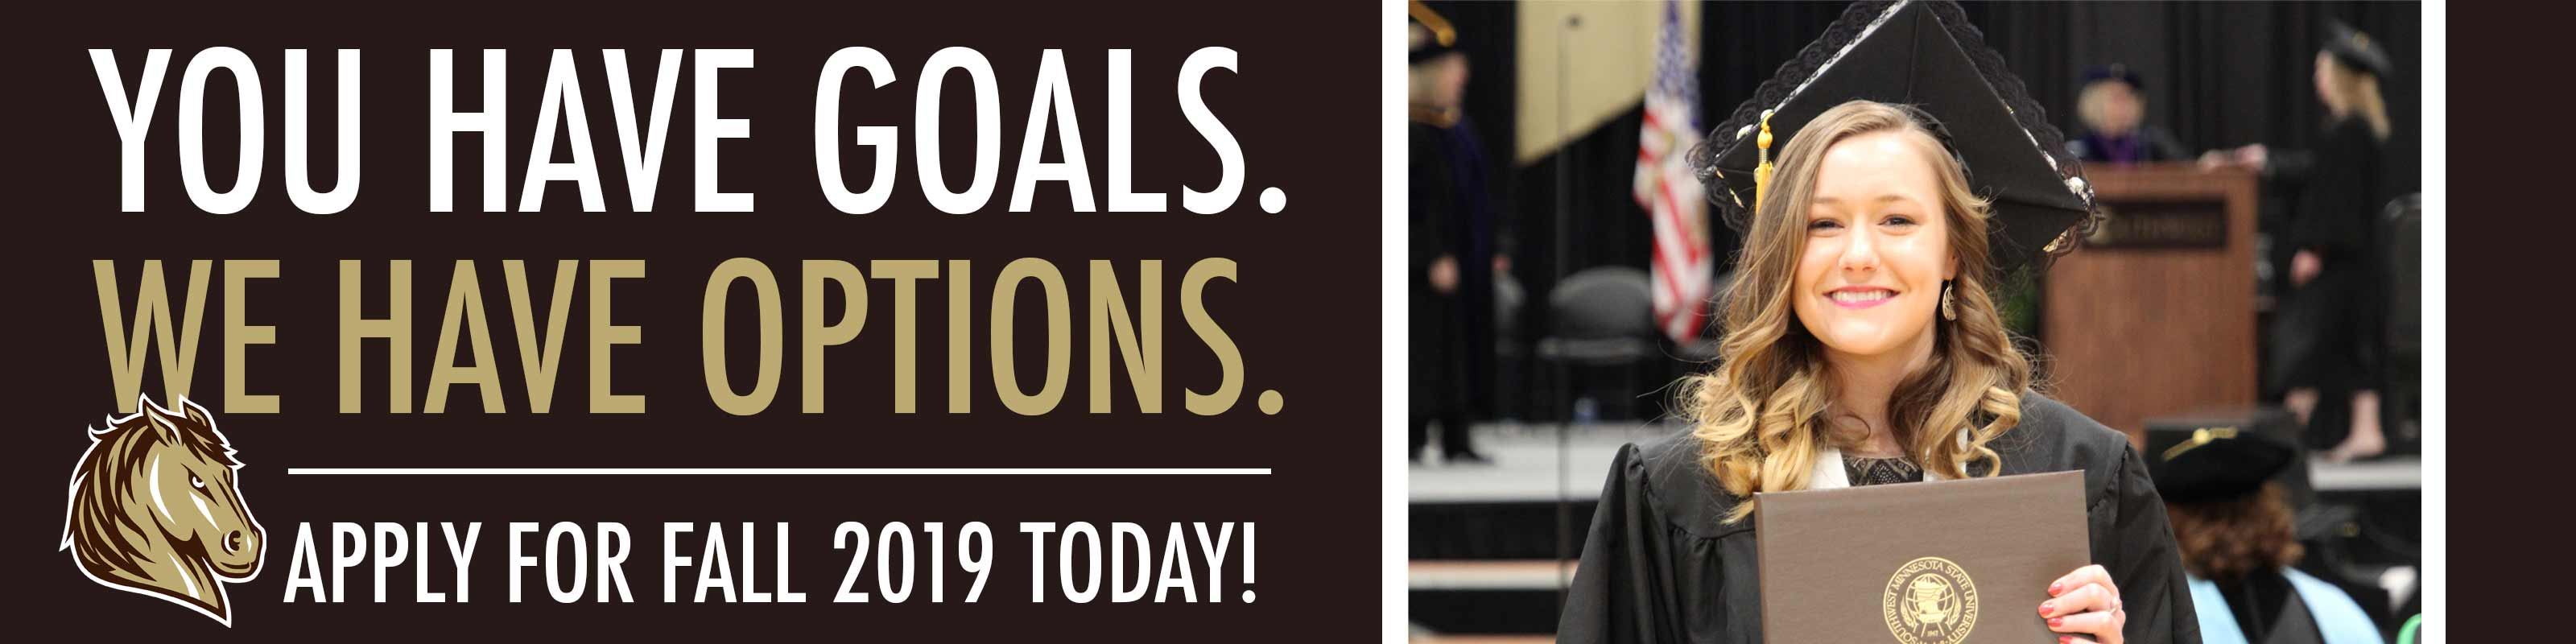 You have goals. We have options. Apply for fall 2019 today!